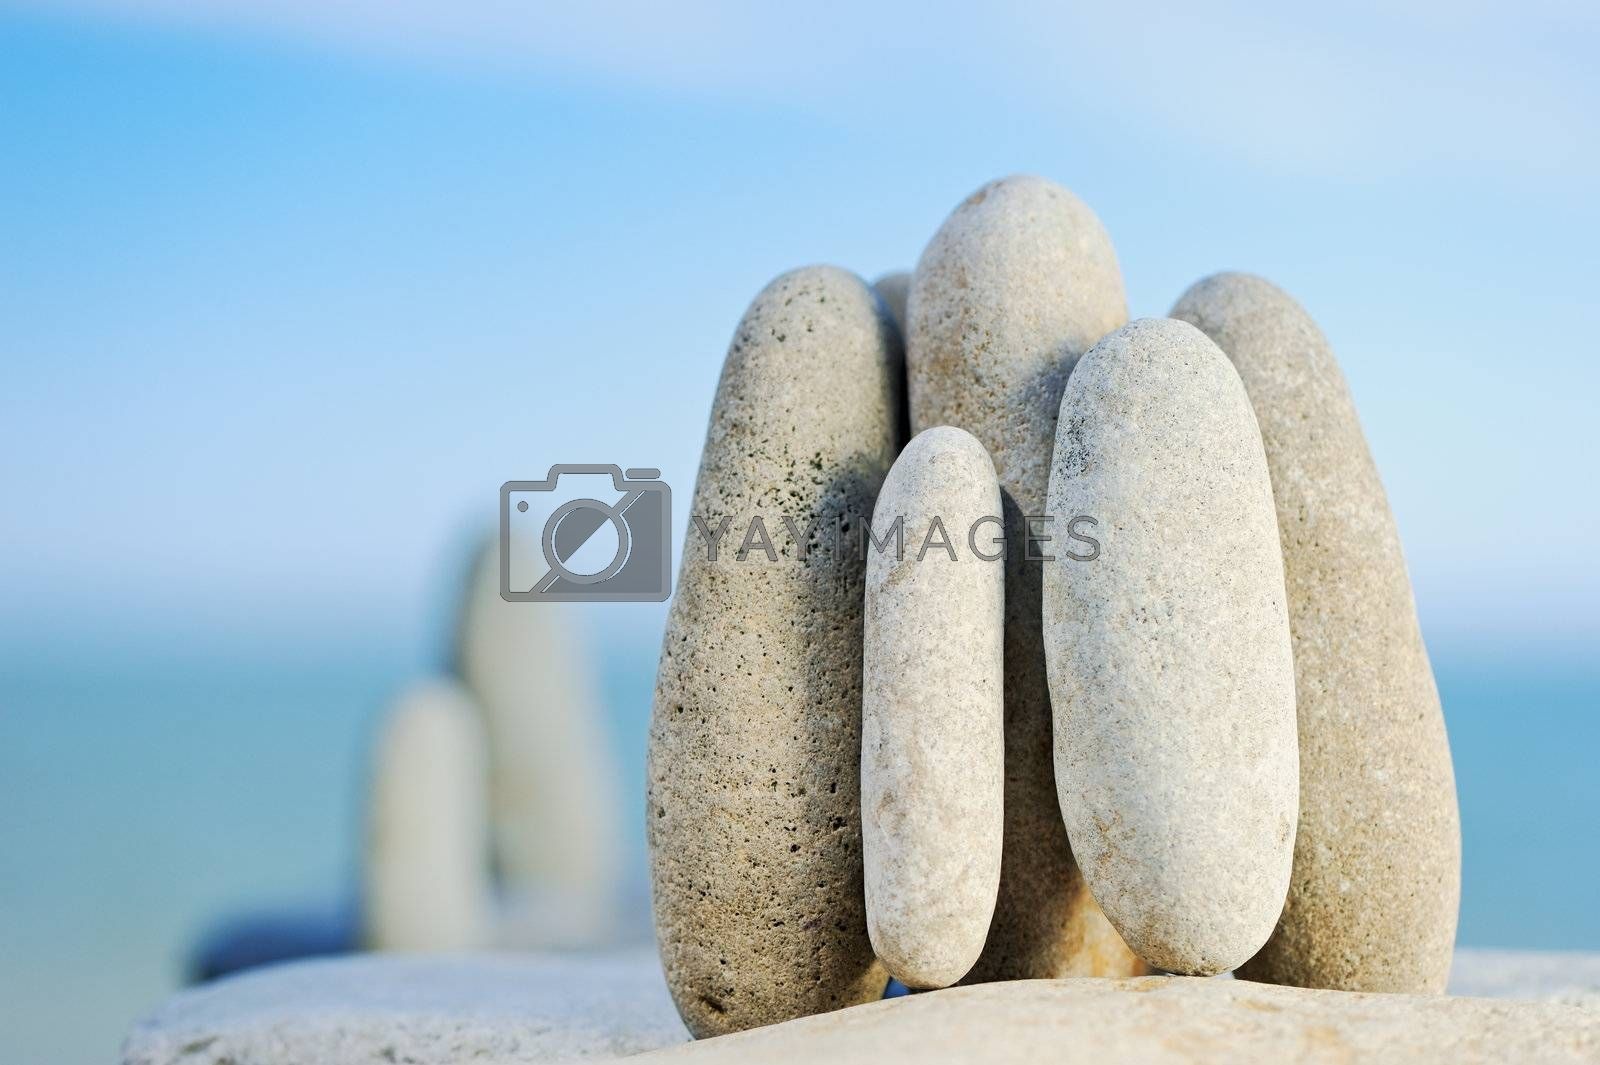 The sea pebble stands vertically early in the morning